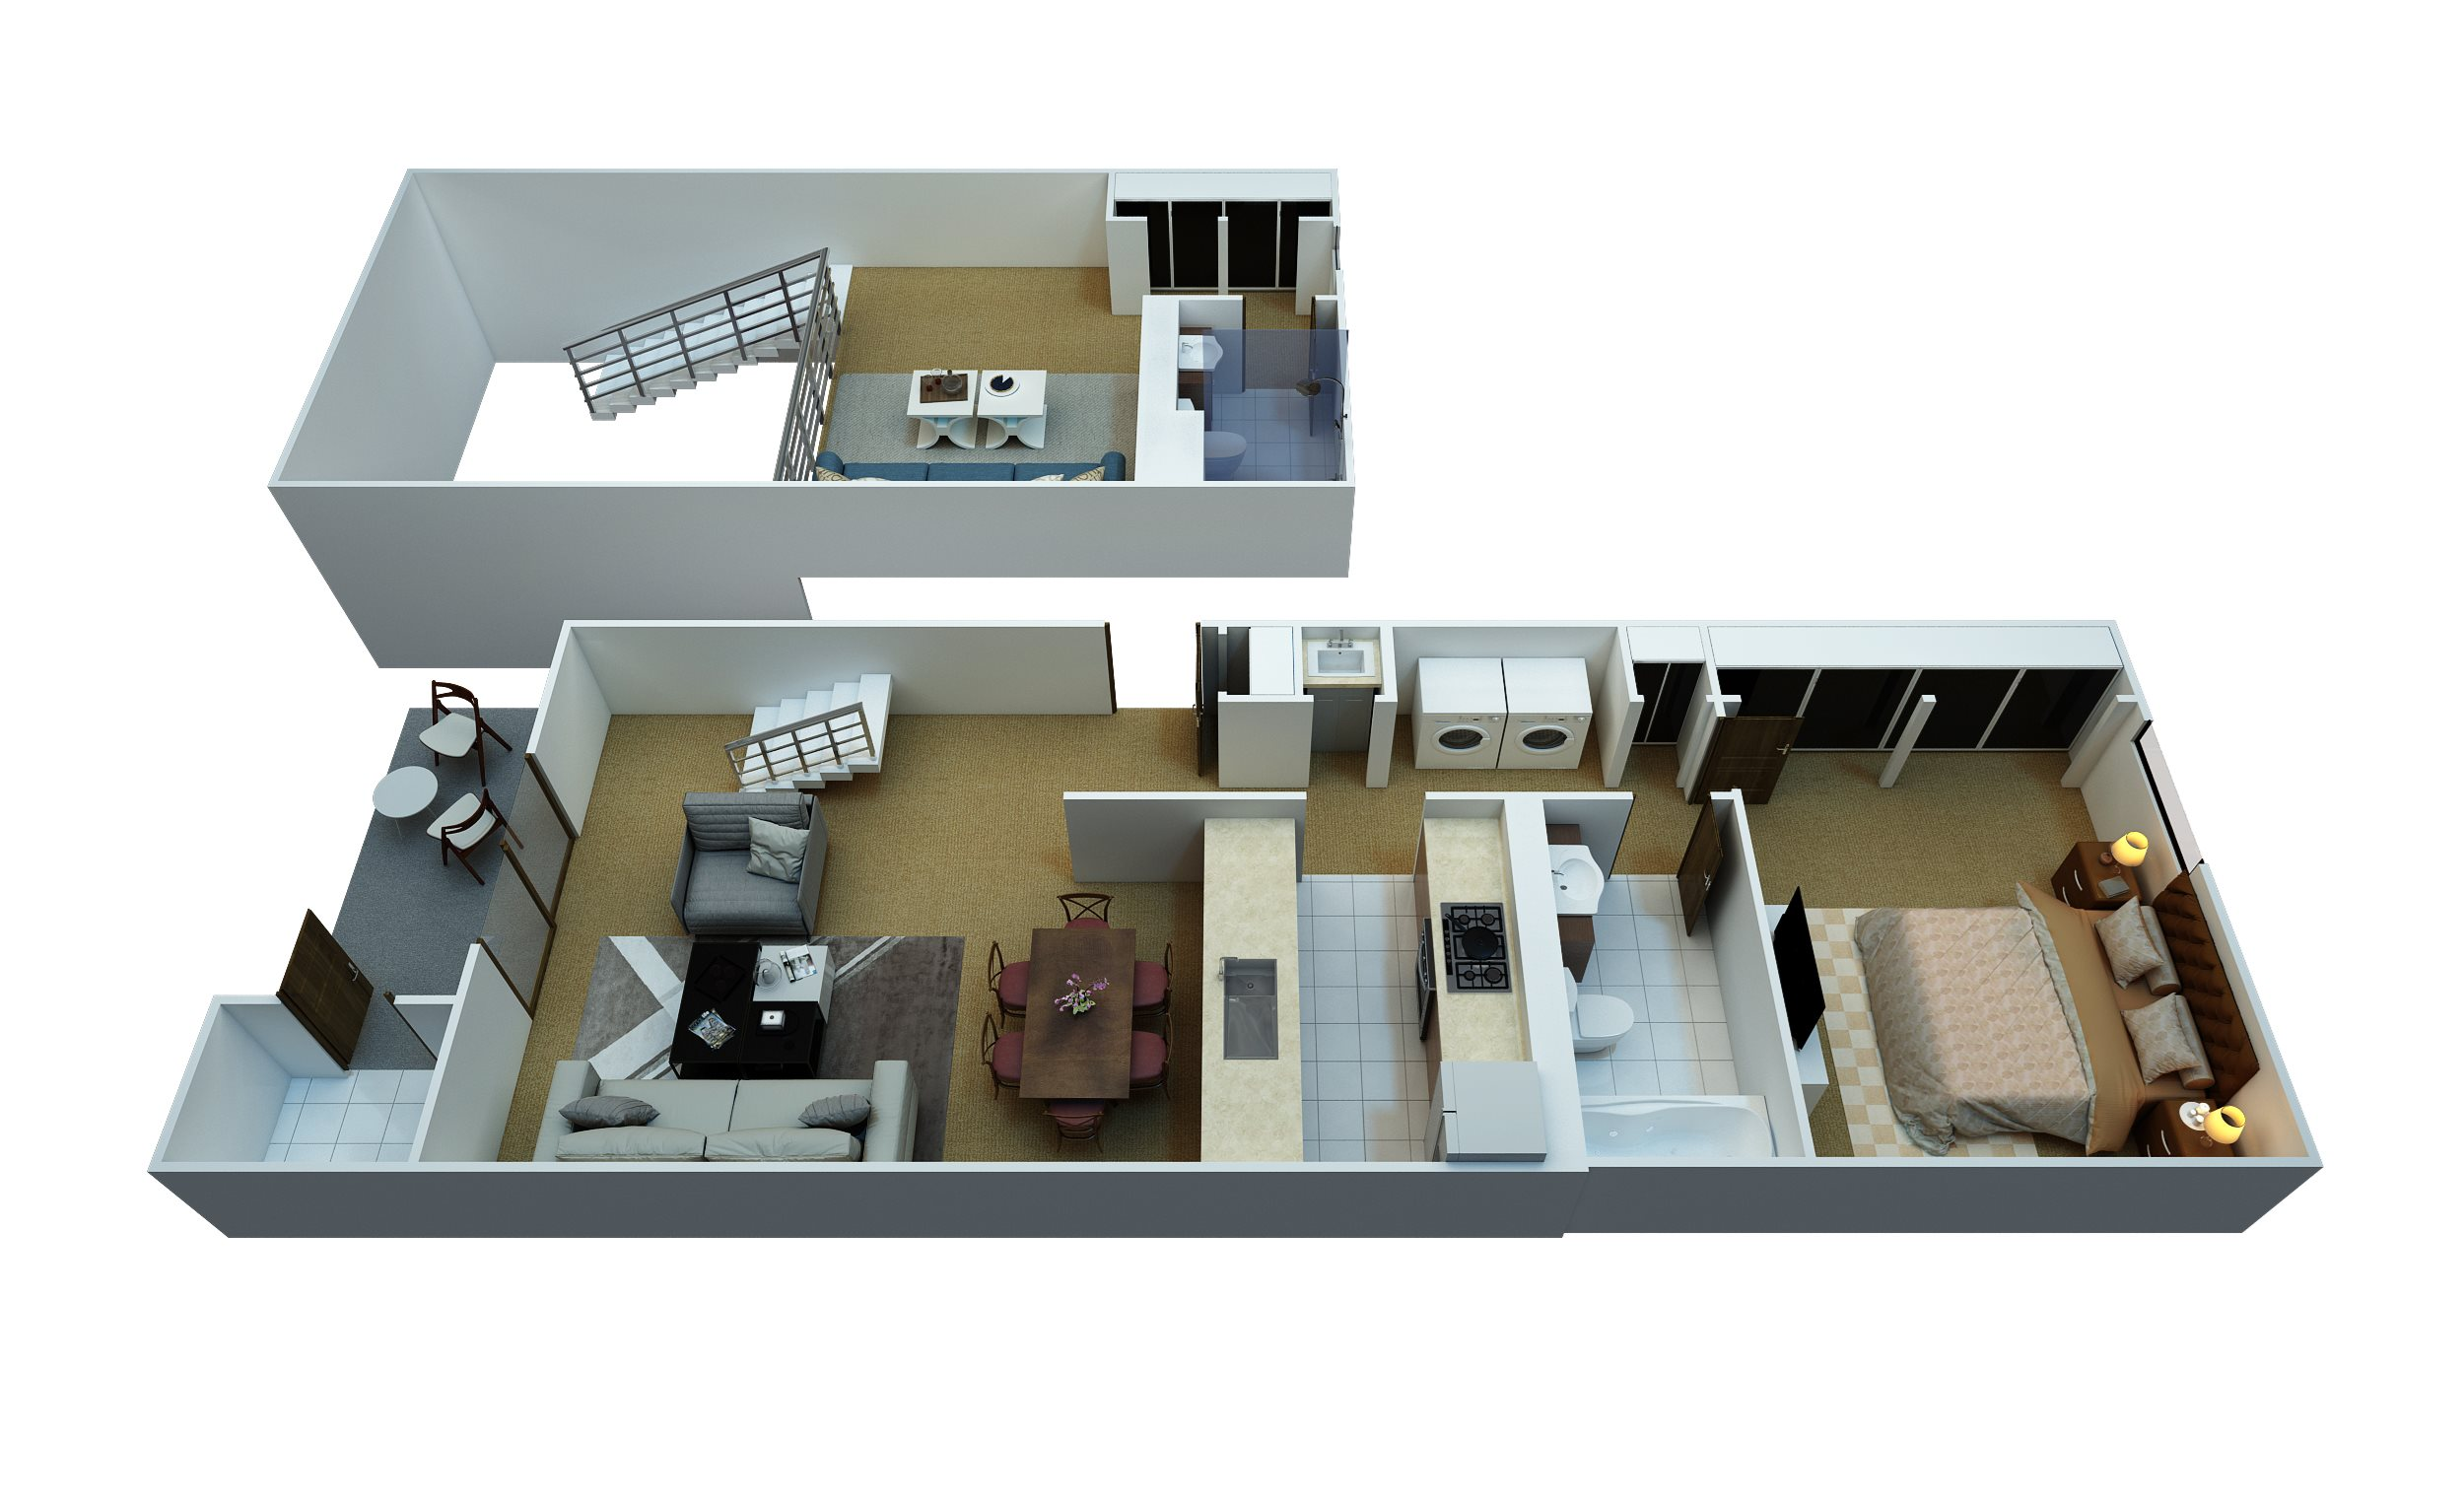 1 Bedroom, 2 Bathroom Floor Plan 2